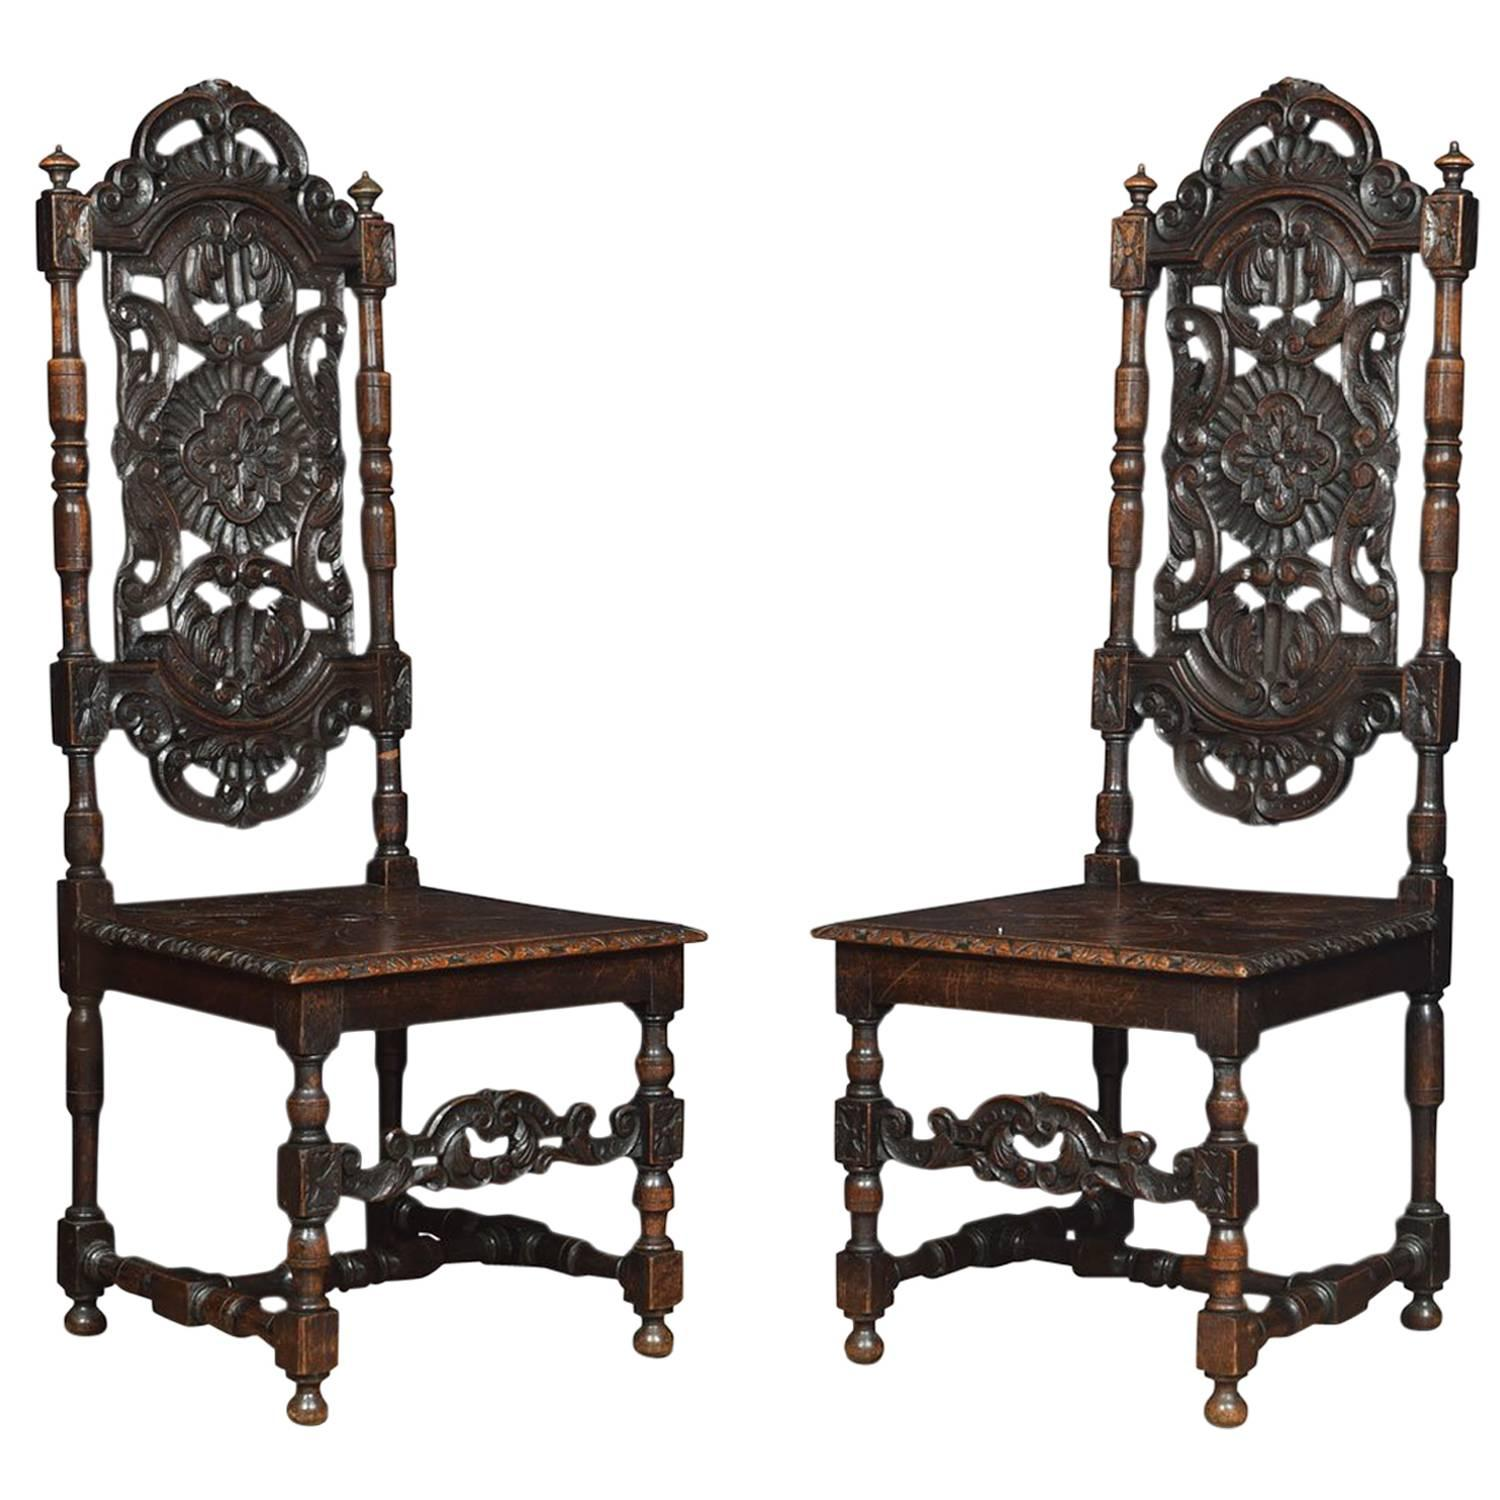 High Quality Pair Of Victorian Jacobean Revival Carved Oak Side Chairs